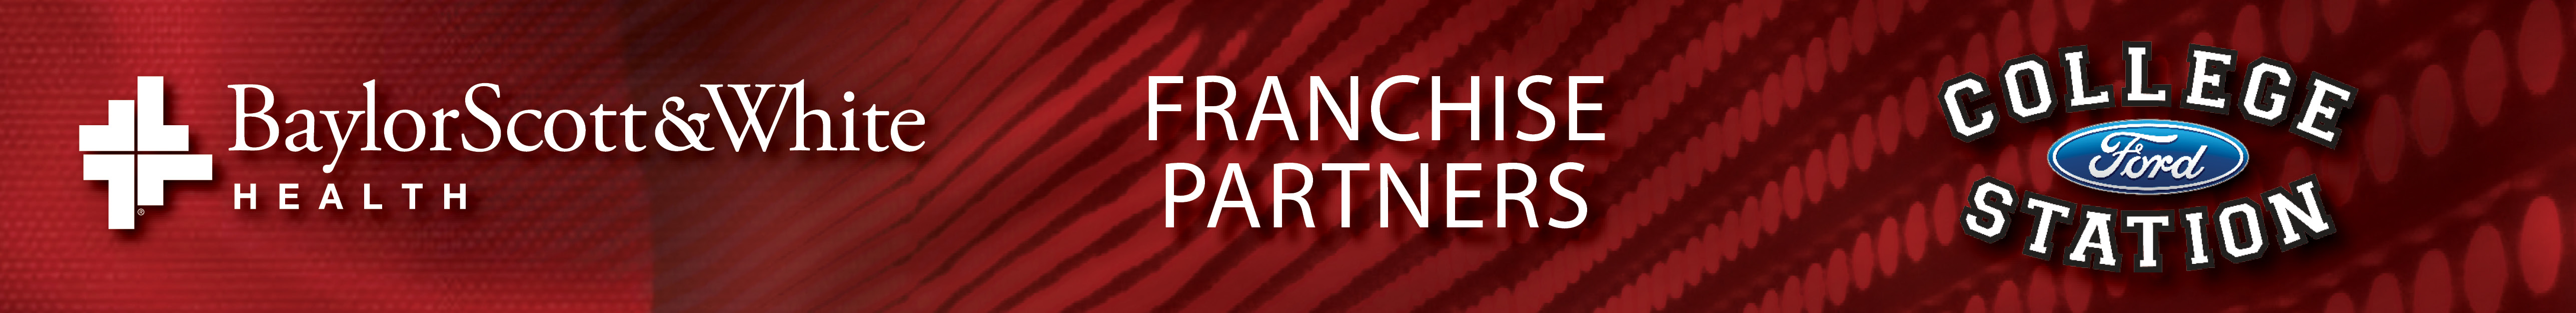 Franchise Partners